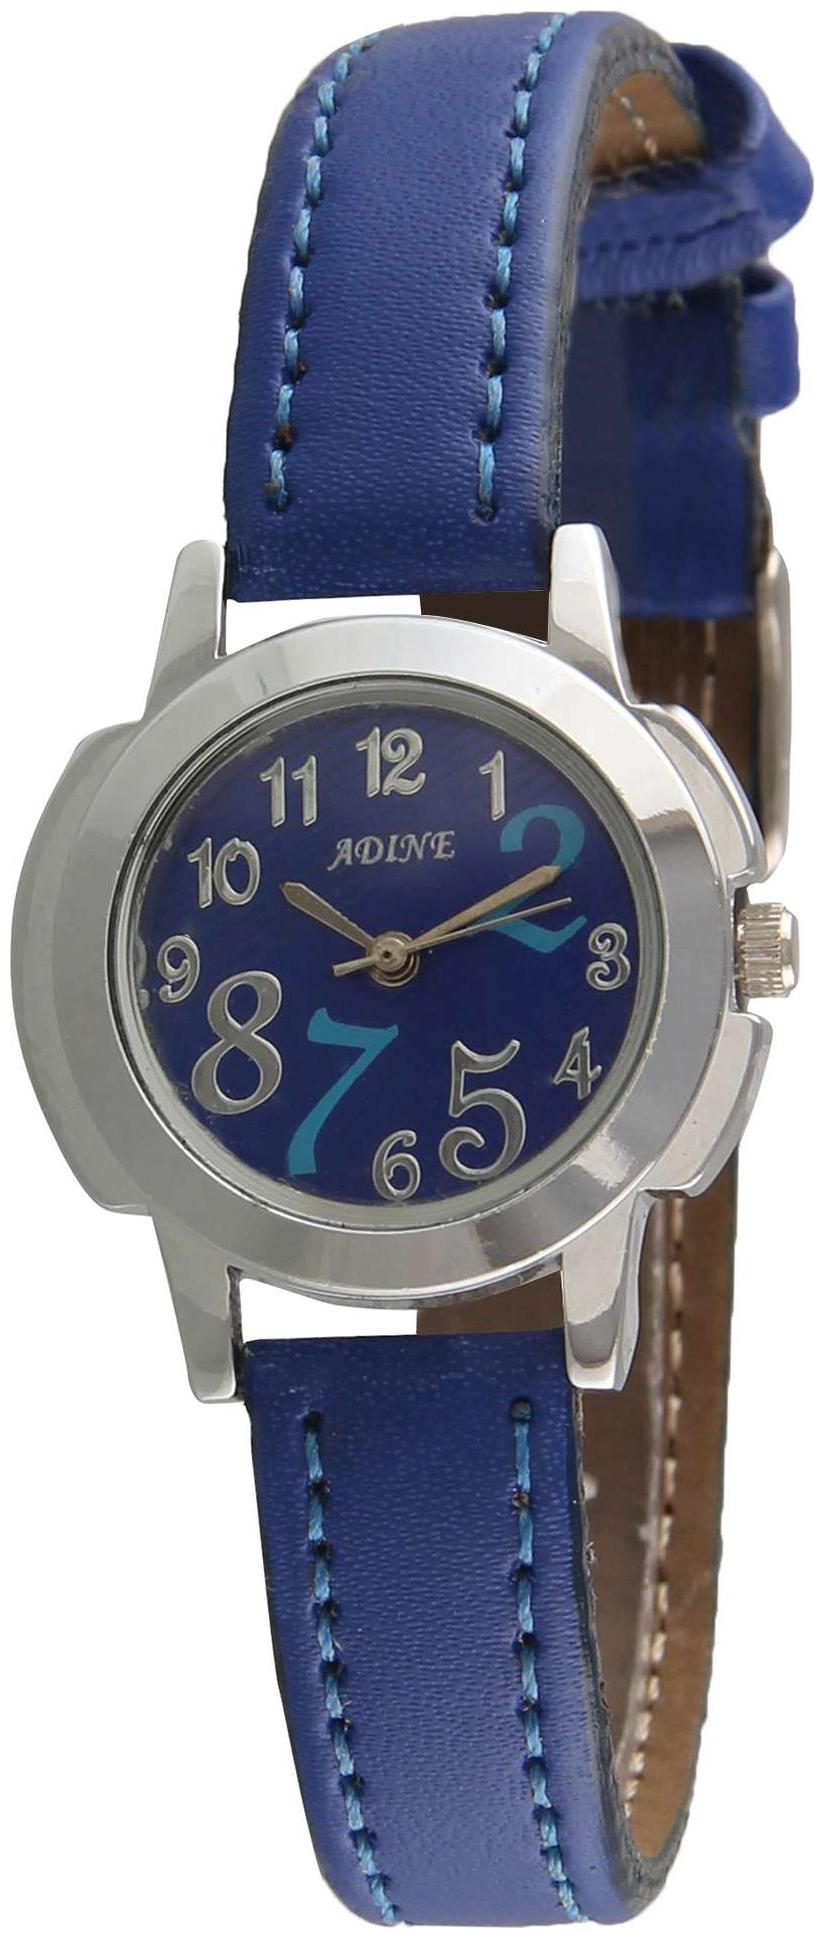 Adine blue dial analog watch for women by R S